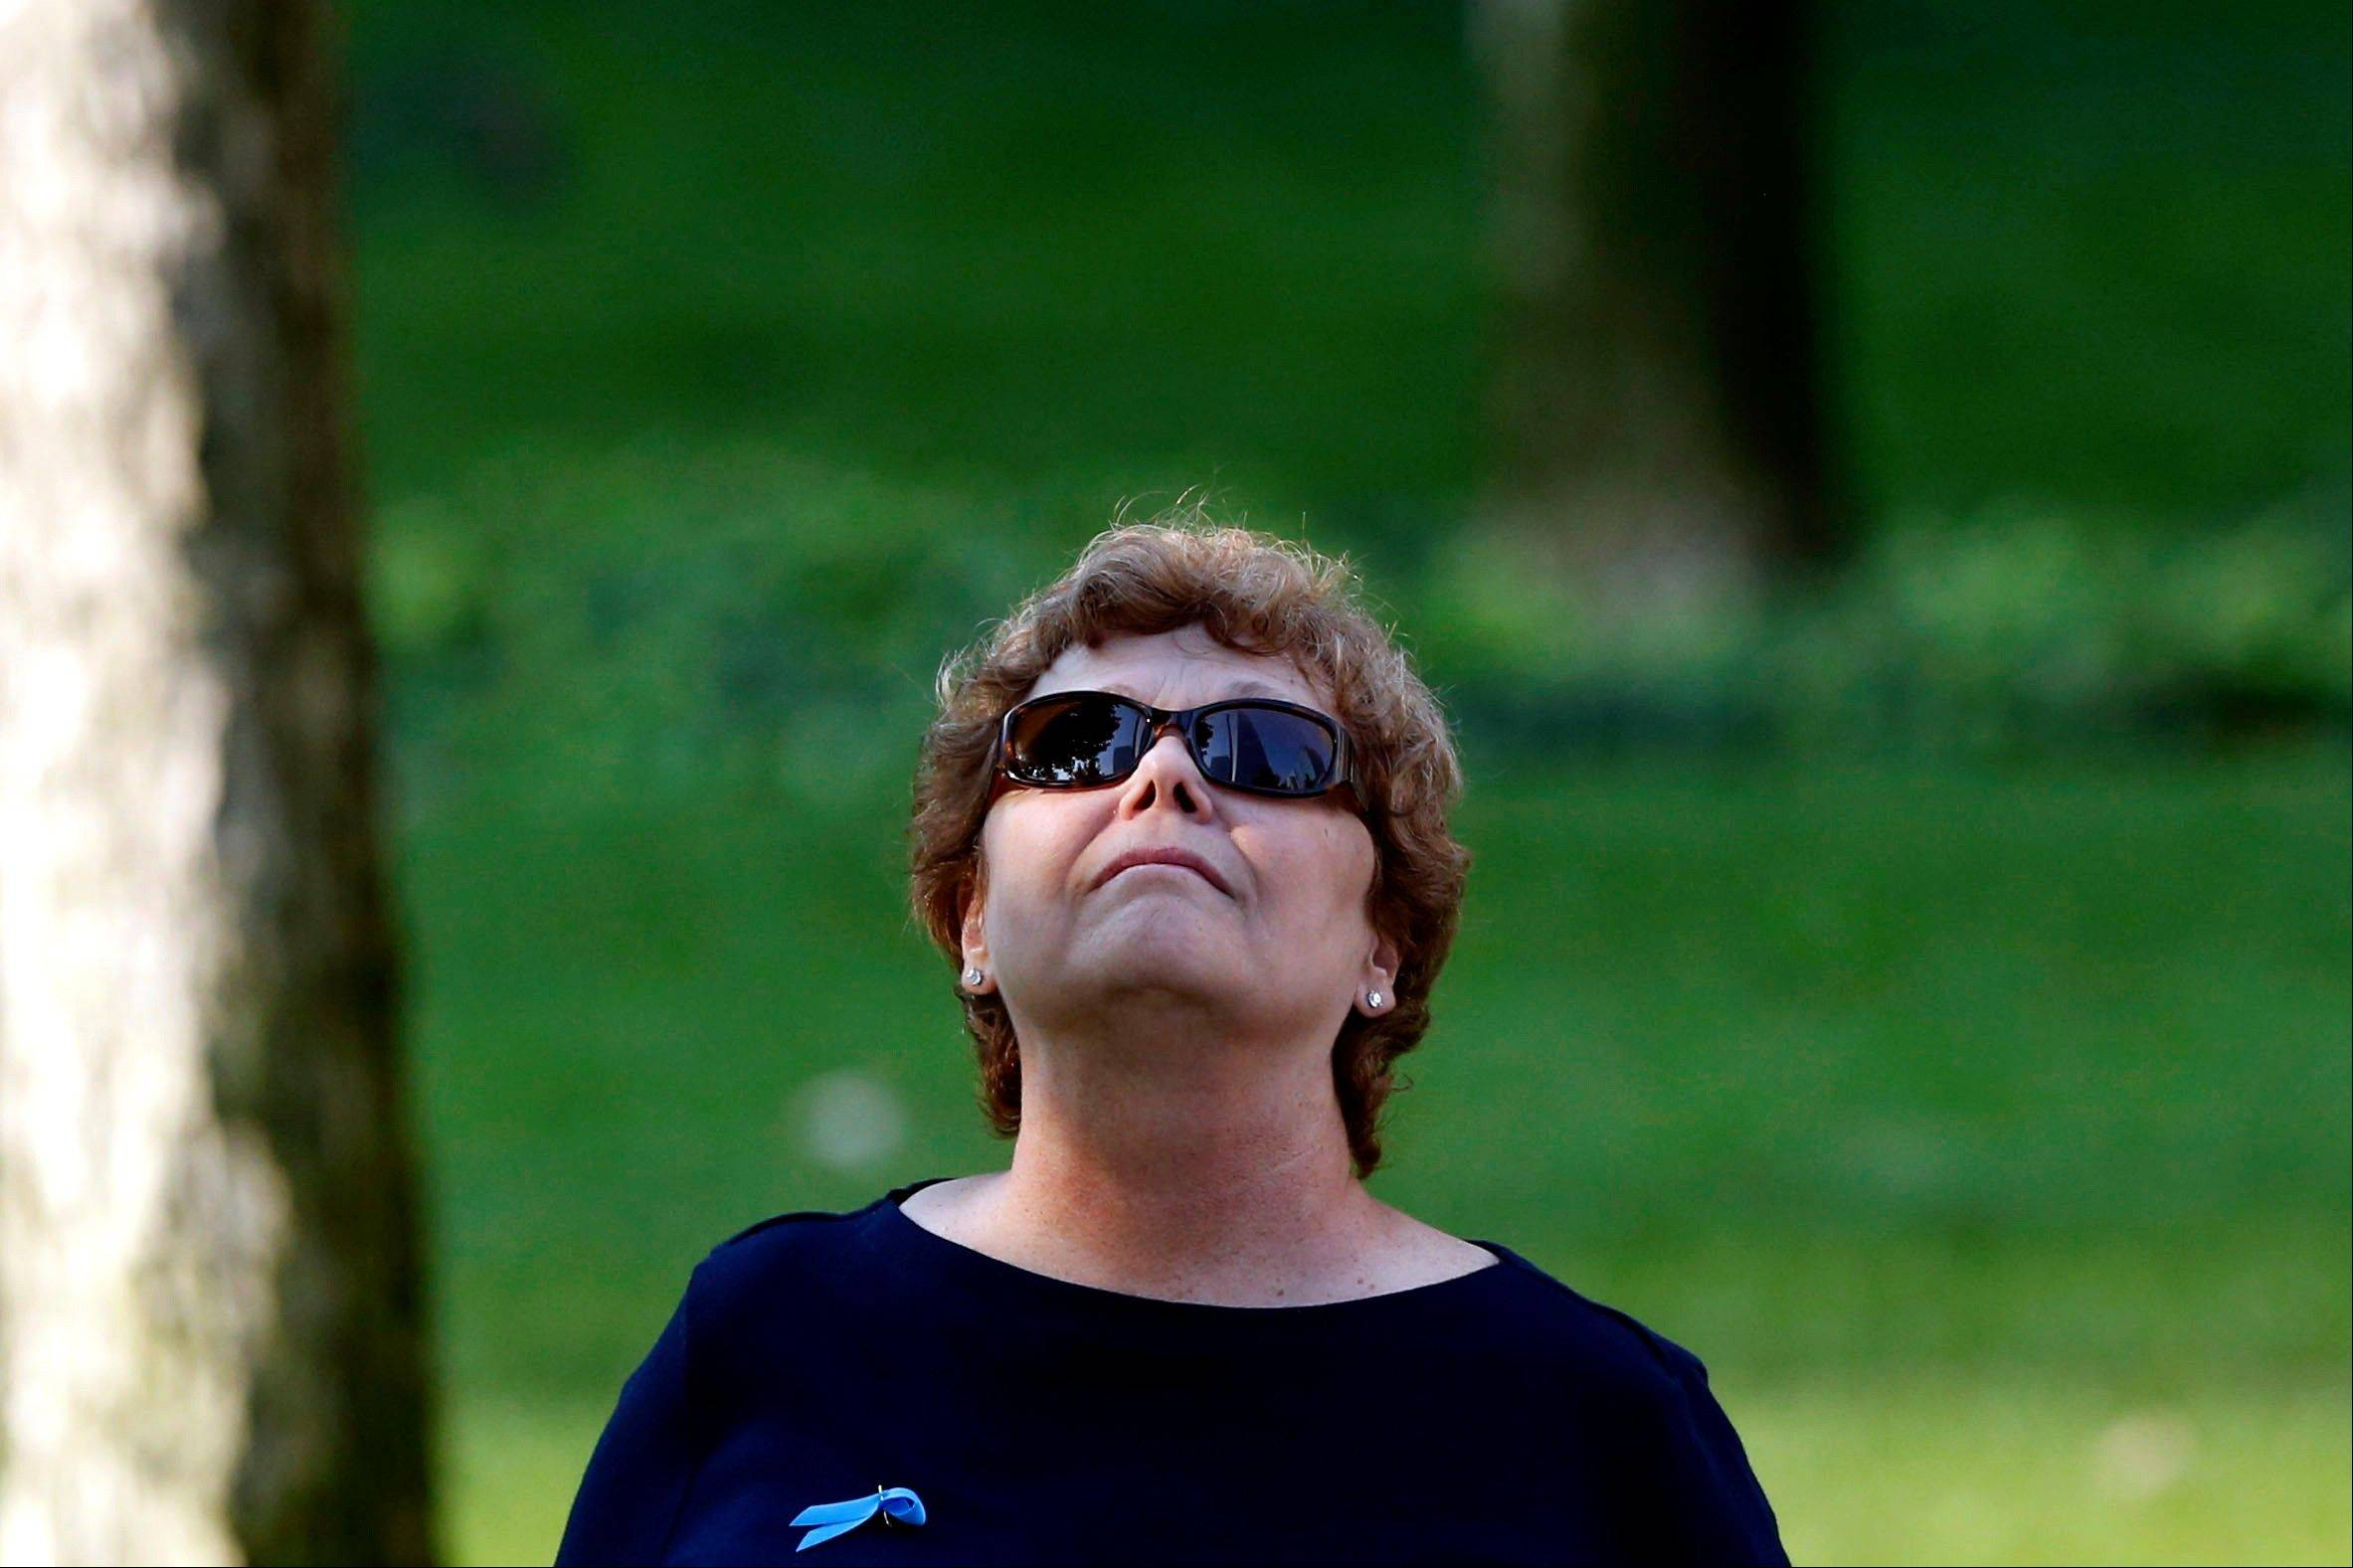 A woman looks to the sky during a moment of silence as friends and relatives of the victims of the 9/11 terrorist attacks gather at the National September 11 Memorial at the World Trade Center site, Wednesday, Sept. 11, 2013, for a ceremony marking the 12th anniversary of the attacks in New York.